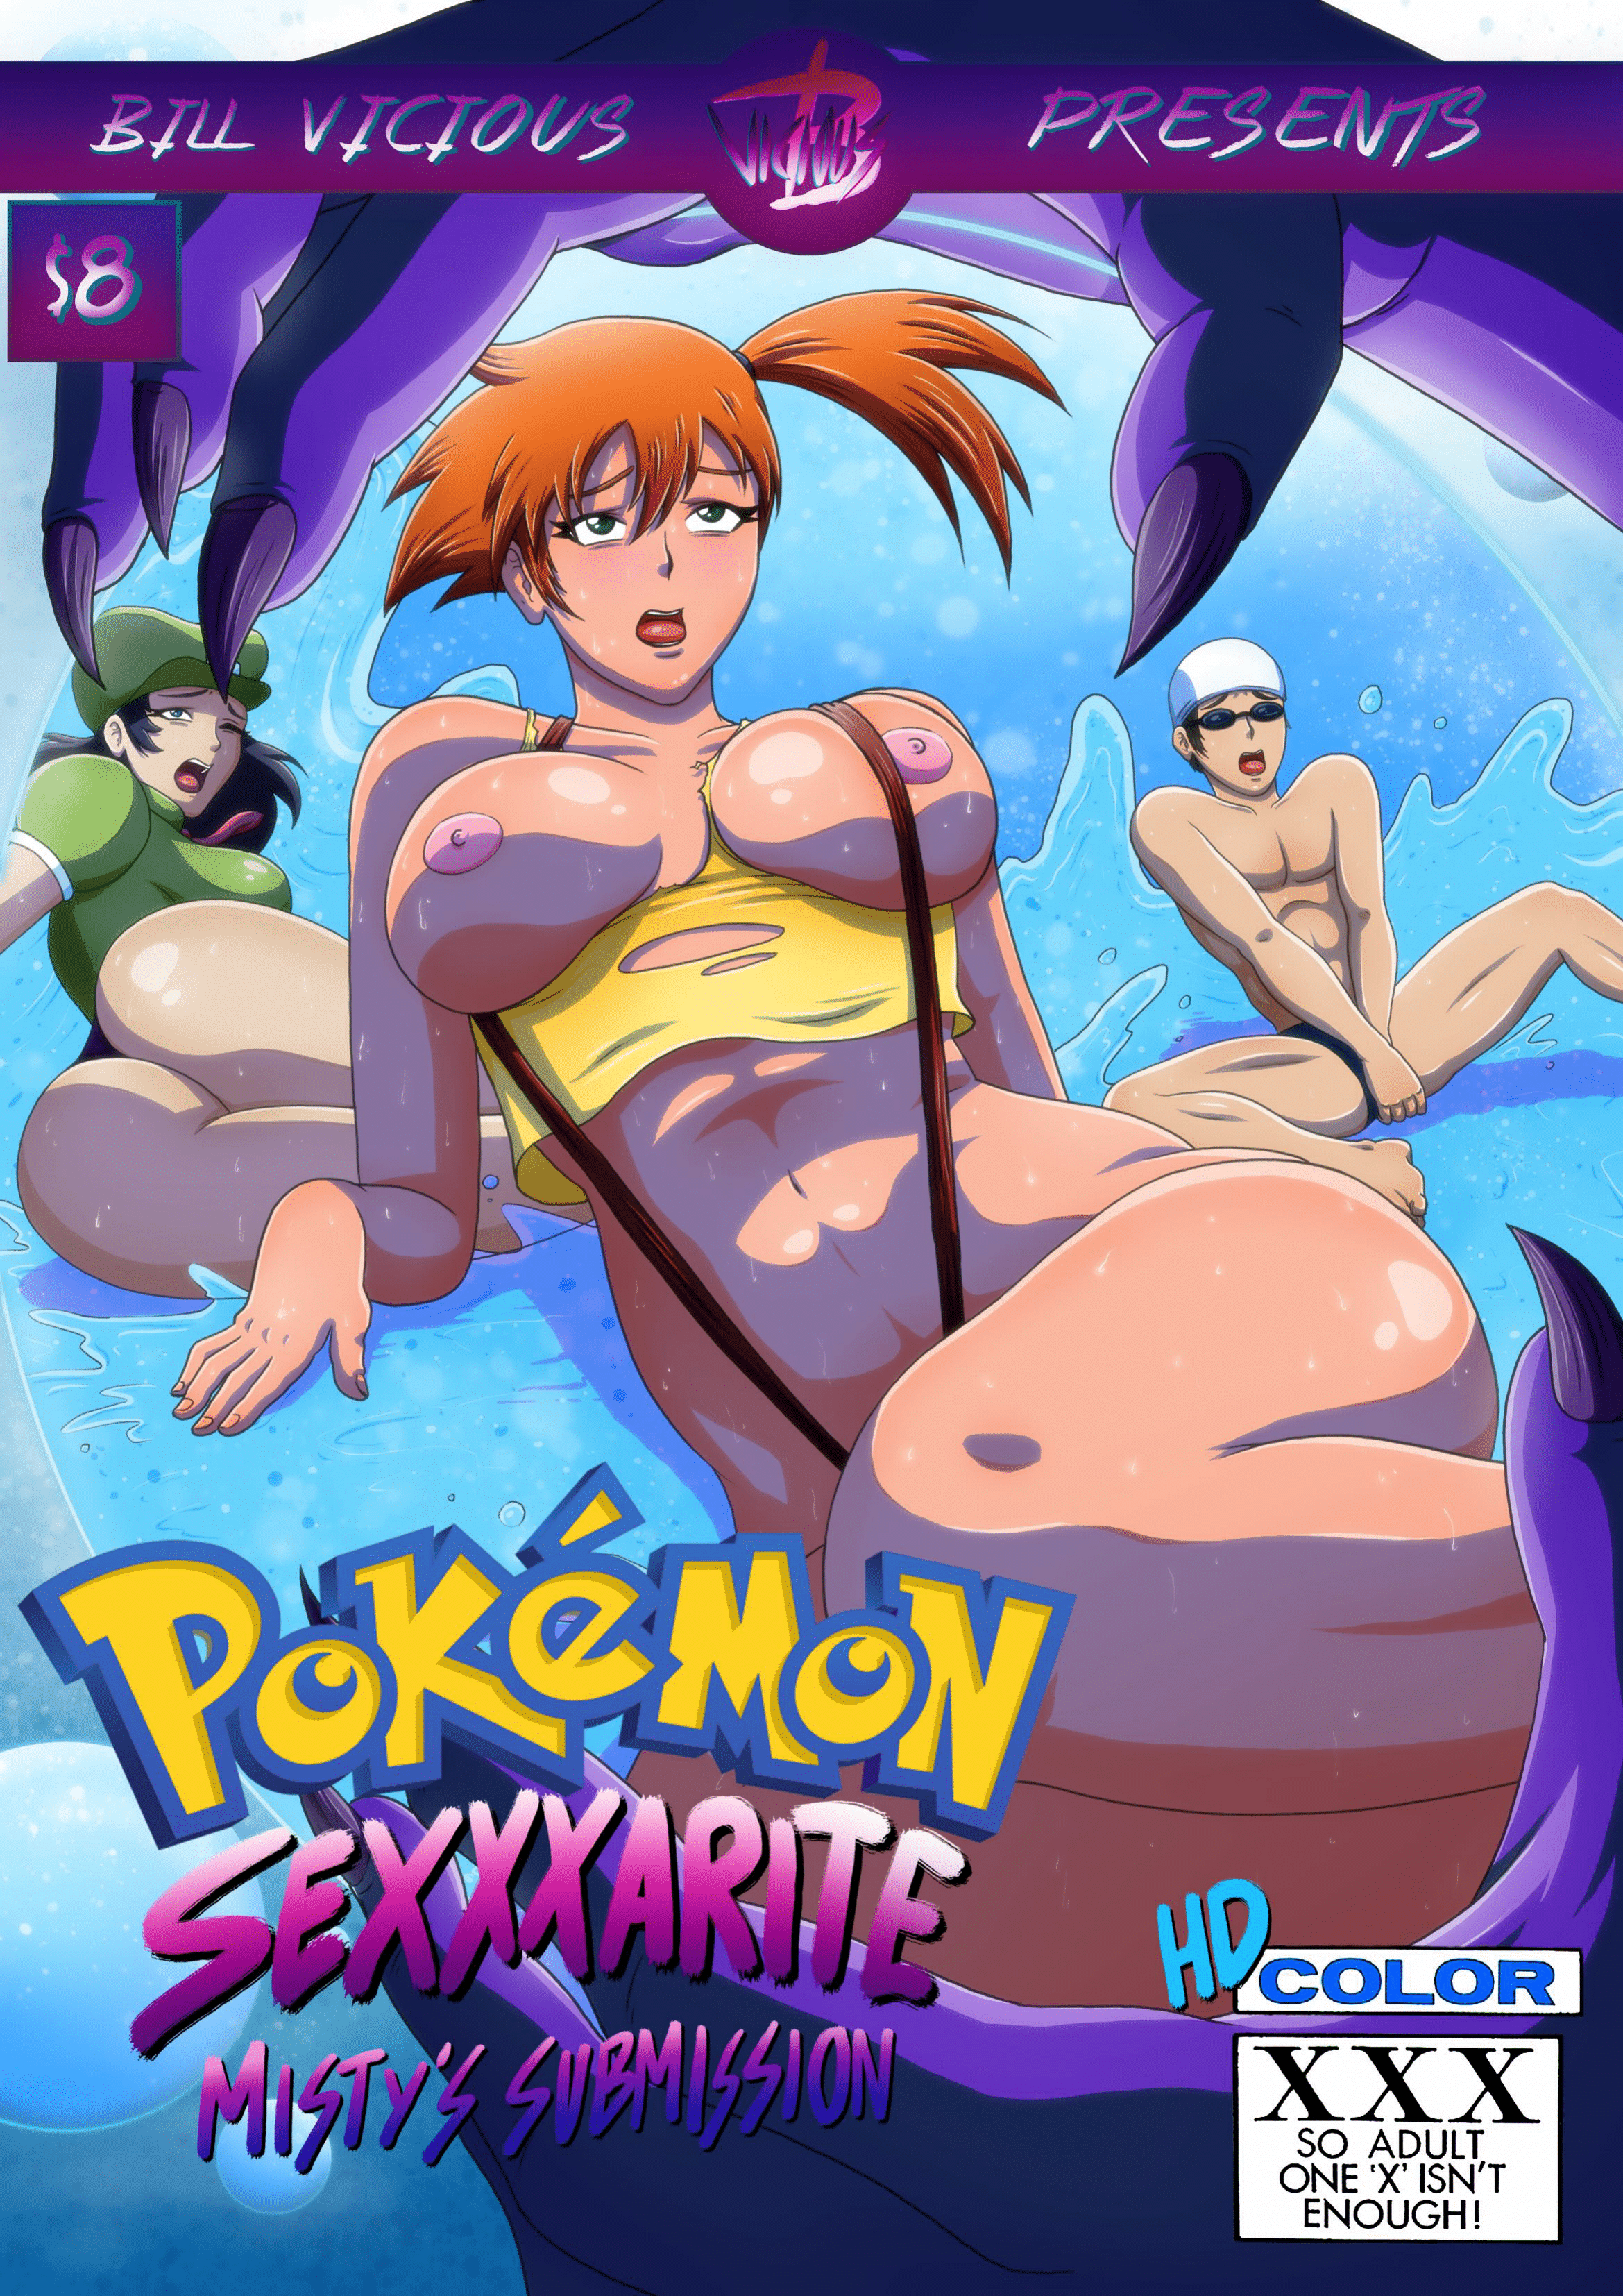 Goodcomix.tk Pokemon - [Bill Vicious] - Pokemon Sexarite - Misty's Submission